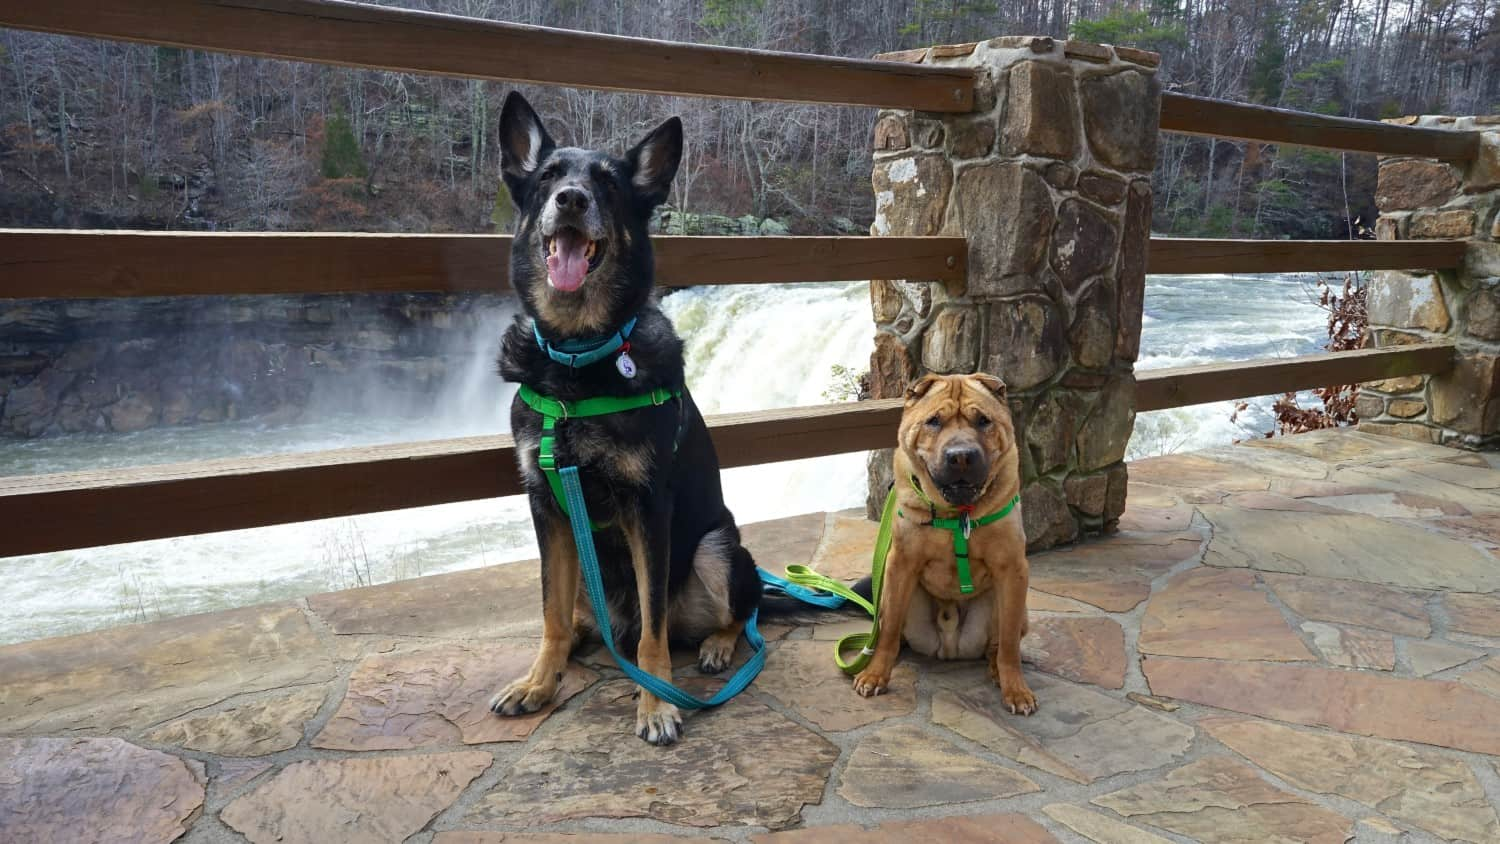 Alabama's Top Pet Friendly Attraction: Little River Canyon | GoPetFriendly.com